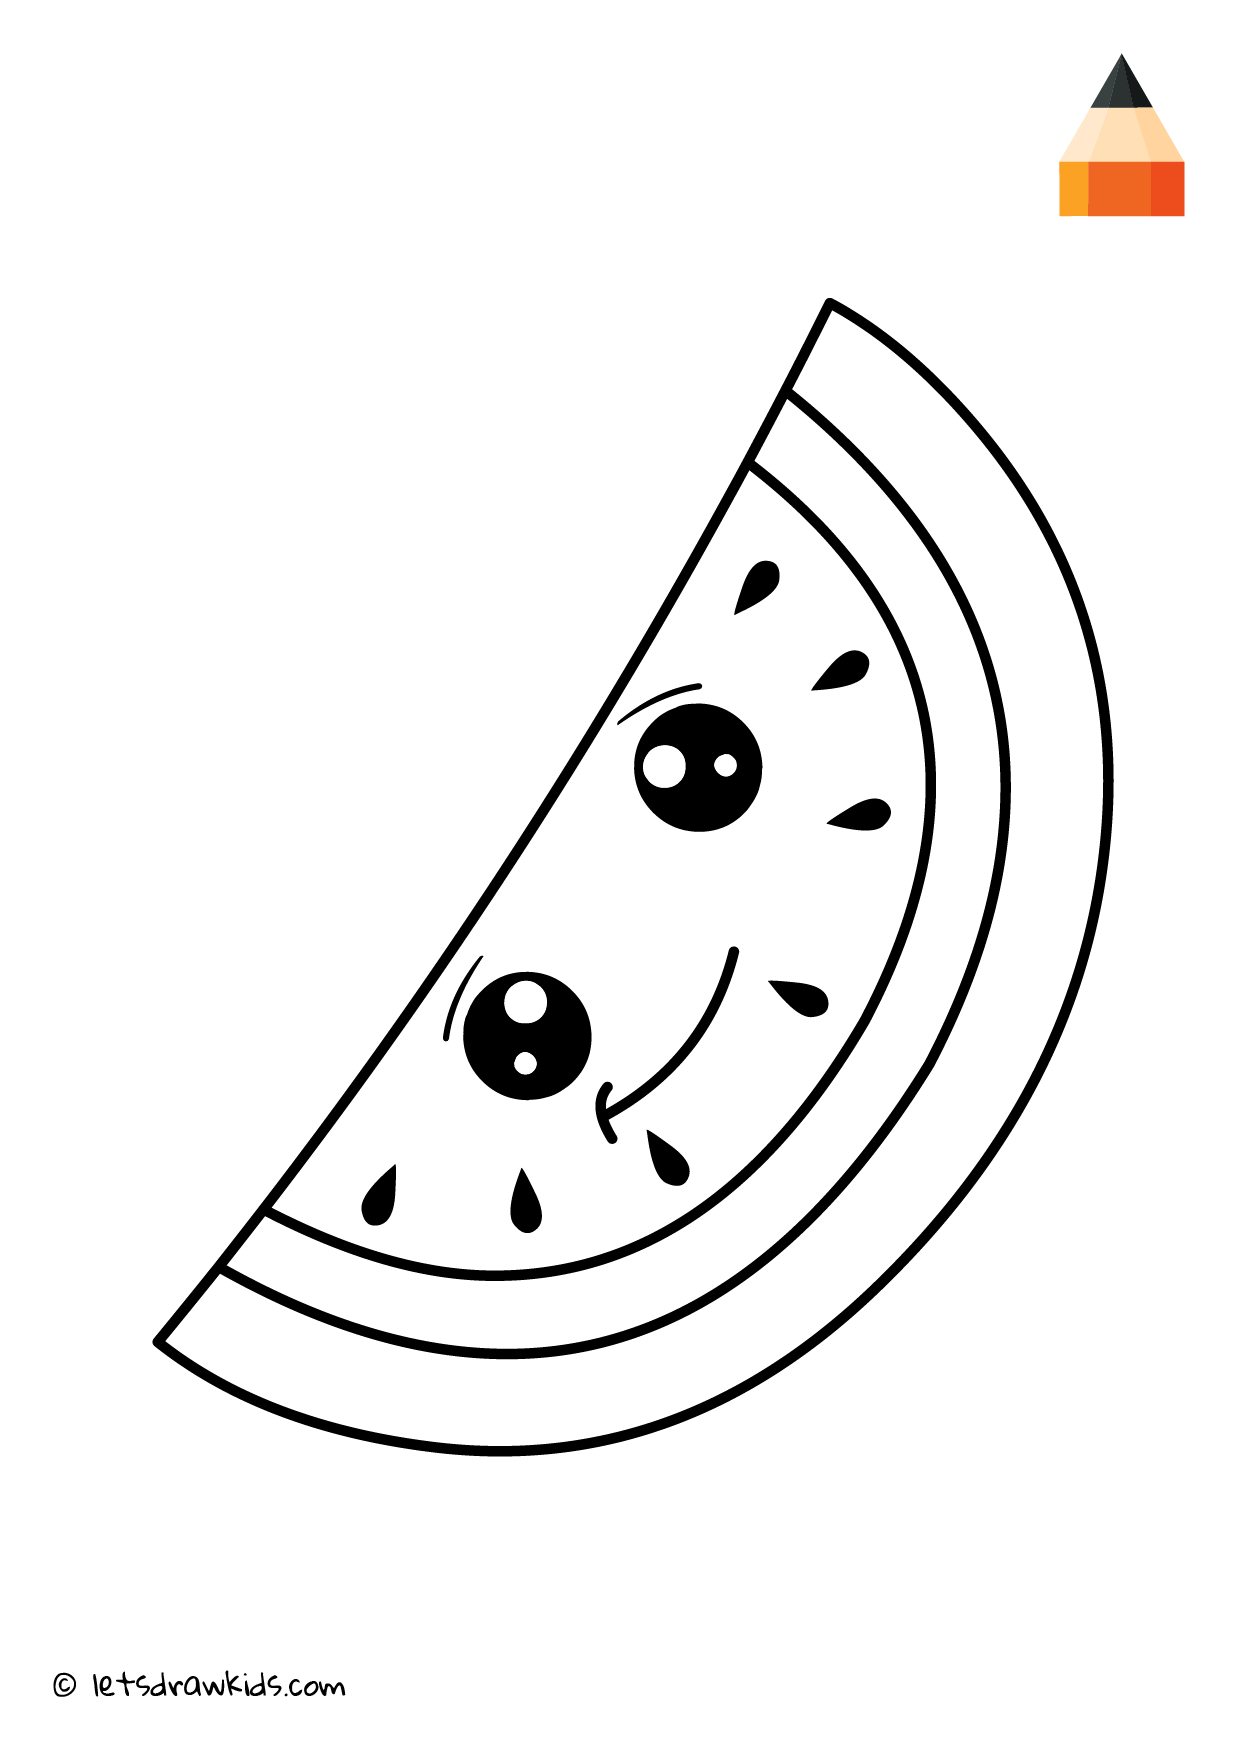 watermelon coloring pages coloring page cute watermelon pages watermelon coloring